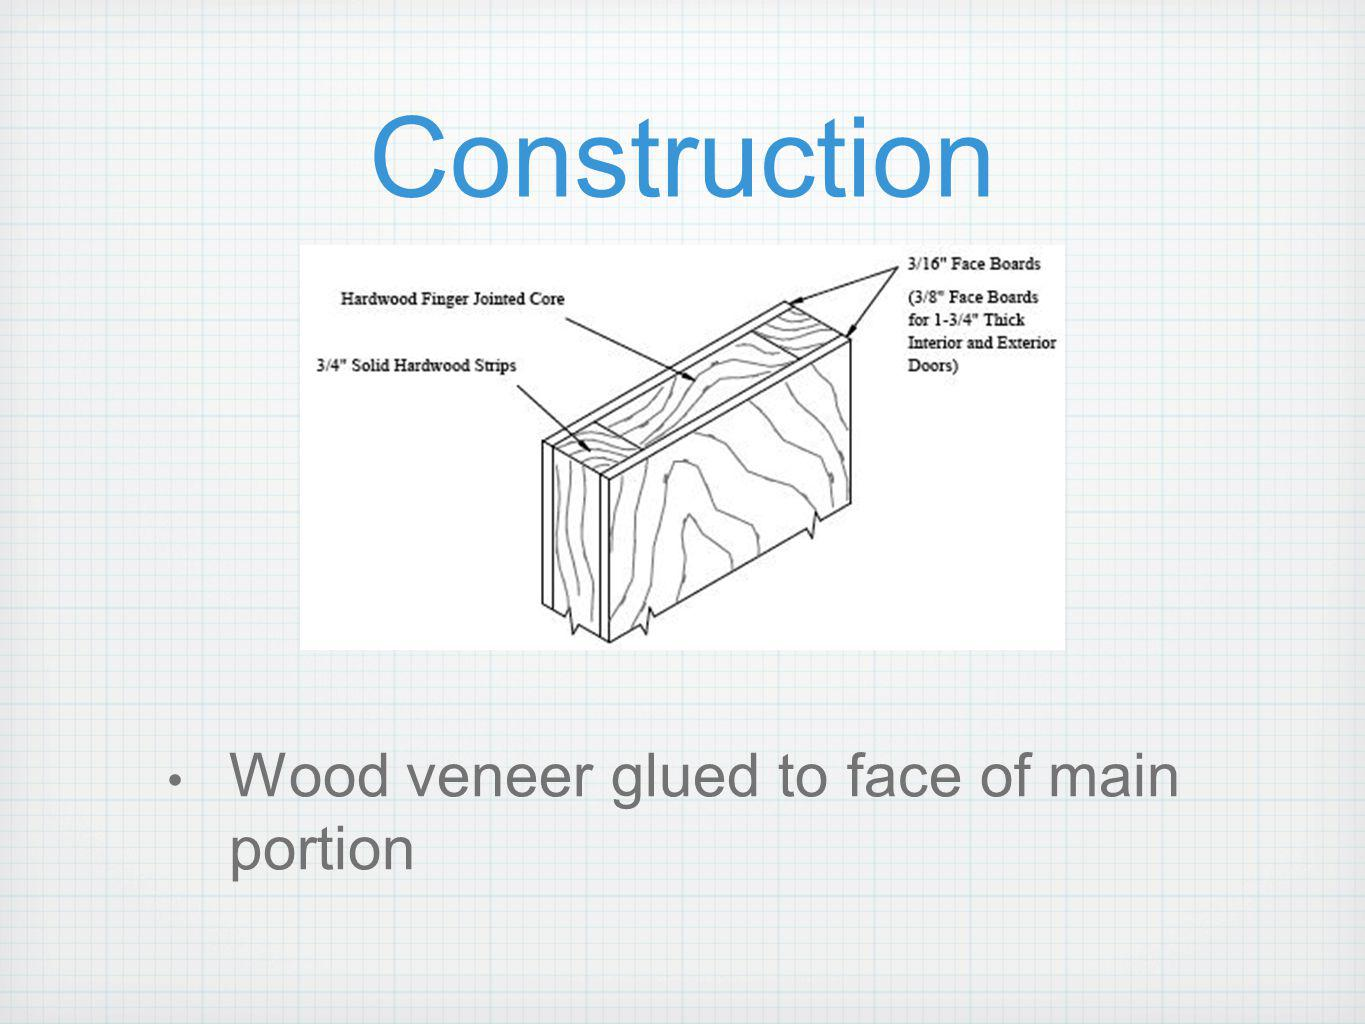 Ash Trees are extensively used to make wooden doors and veneers